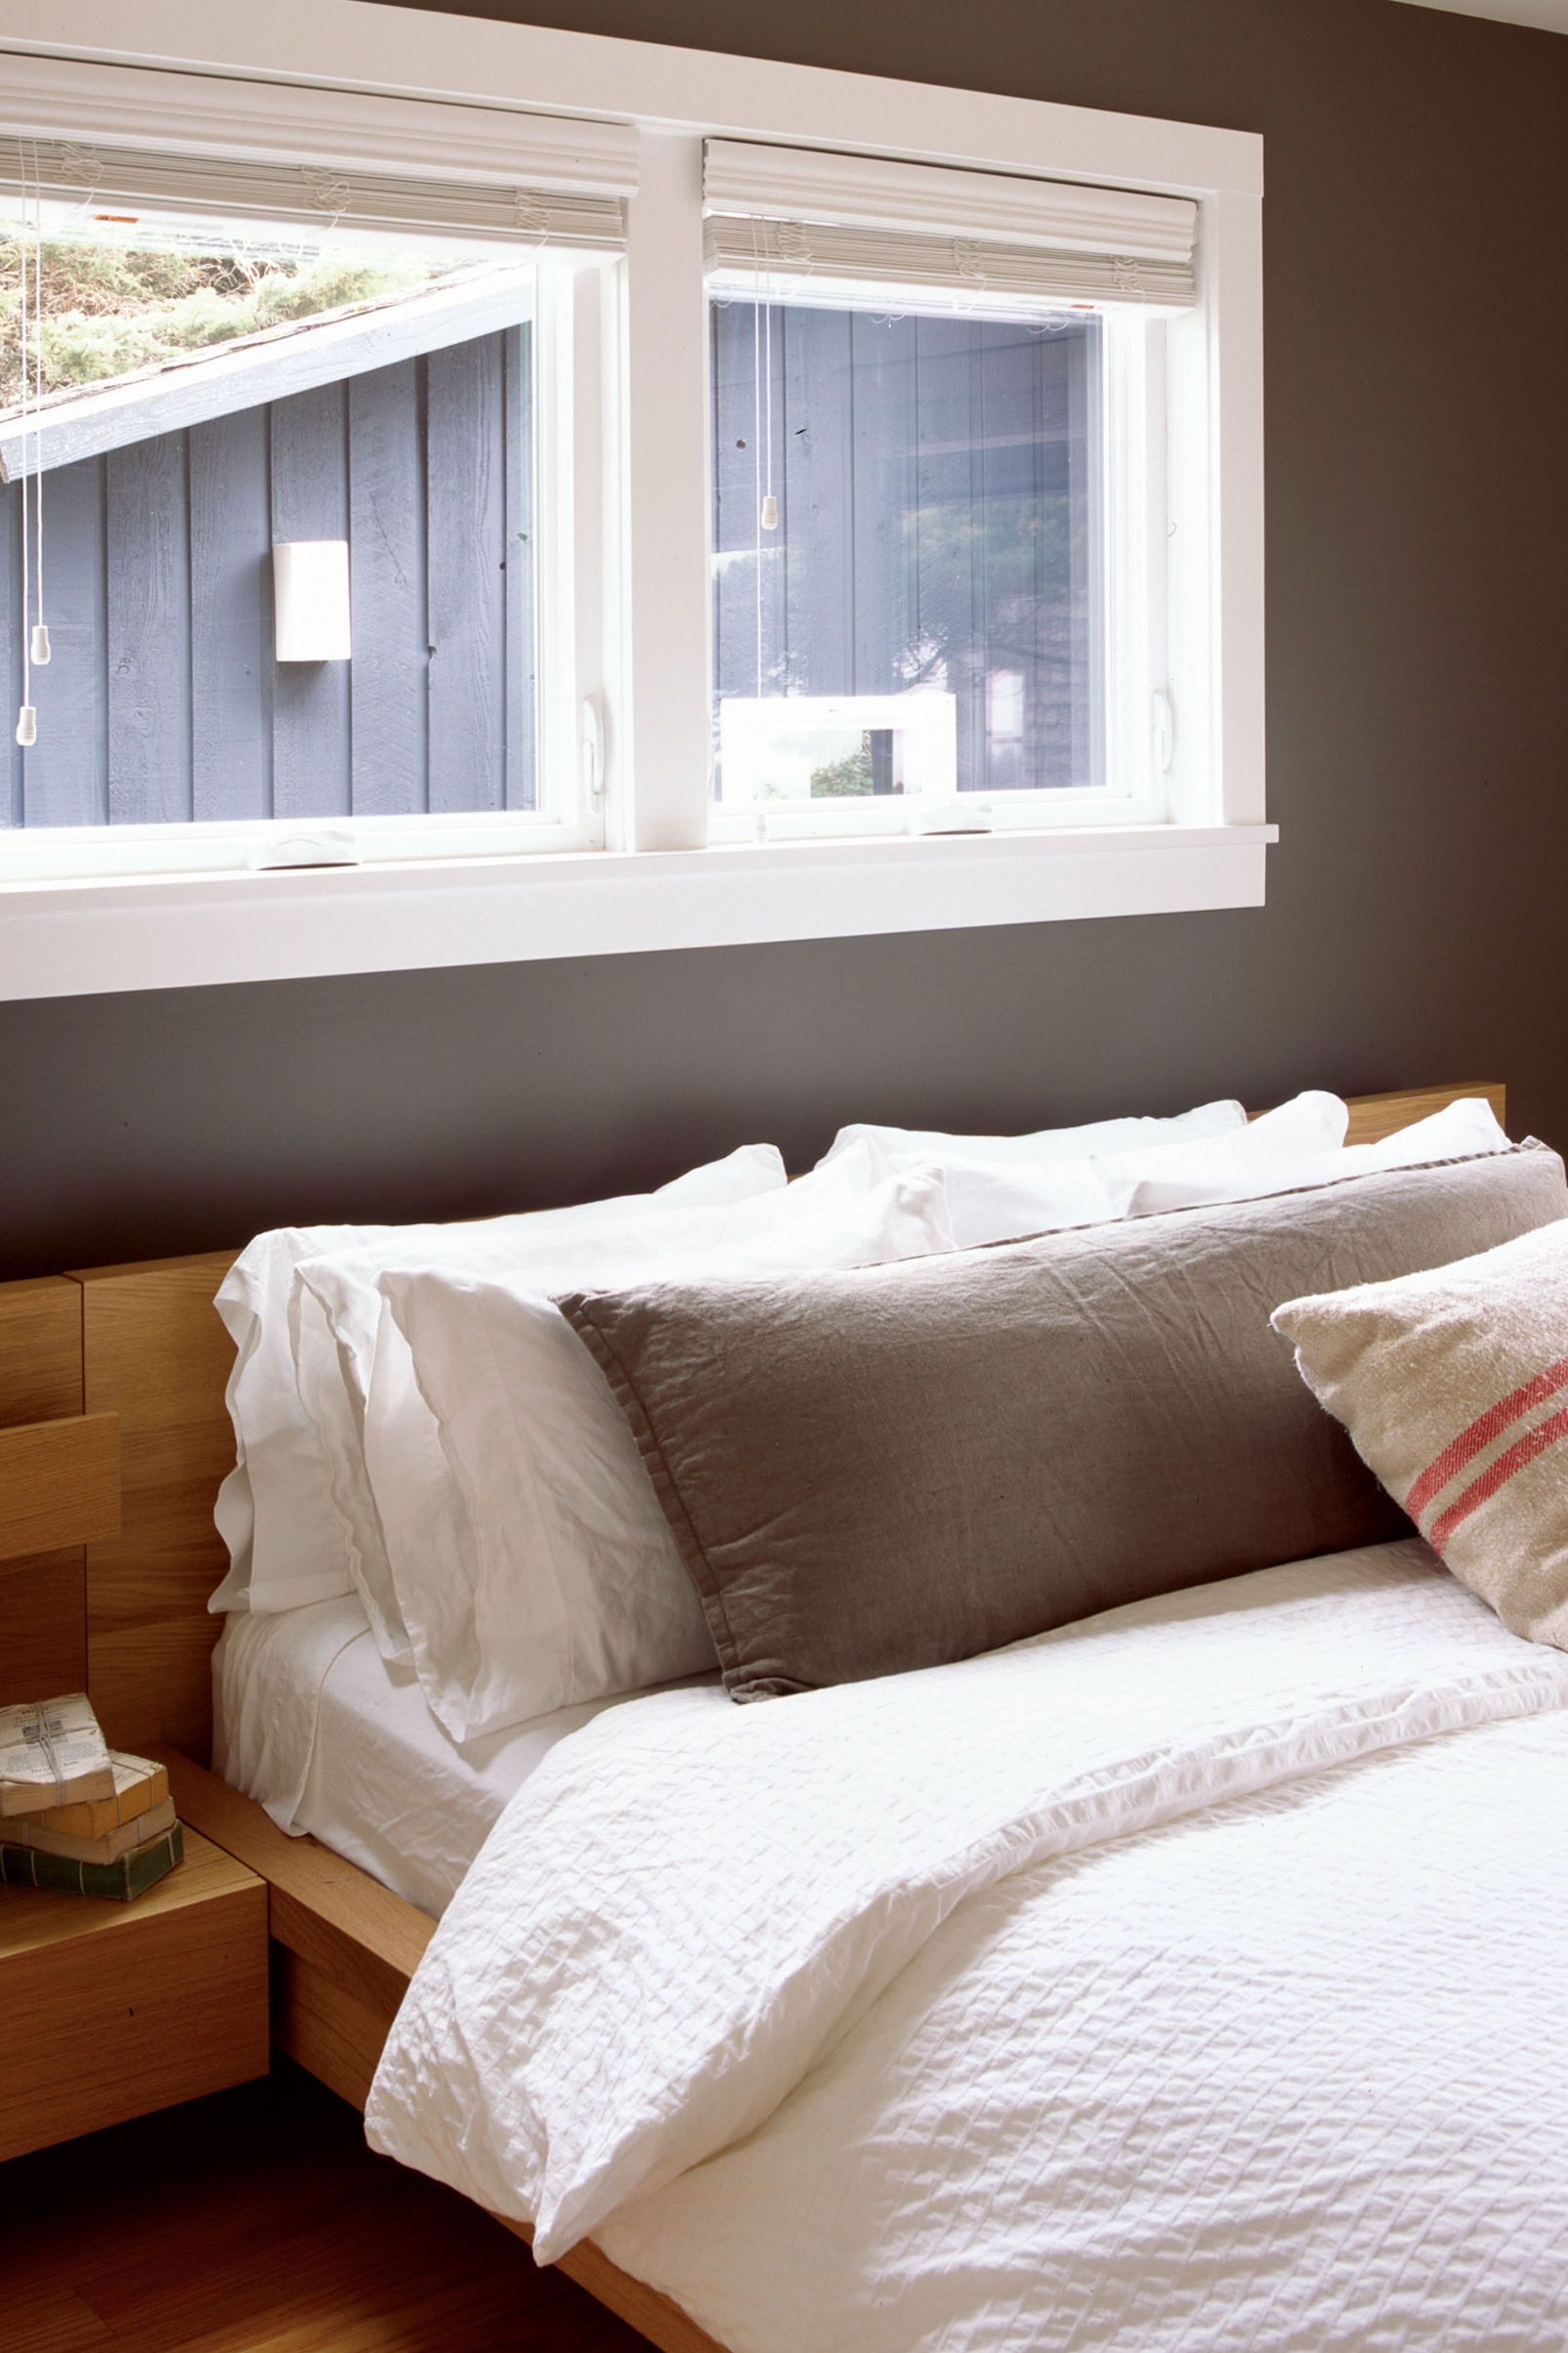 Designer Tricks For Small Spaces Peaceful Bedroom